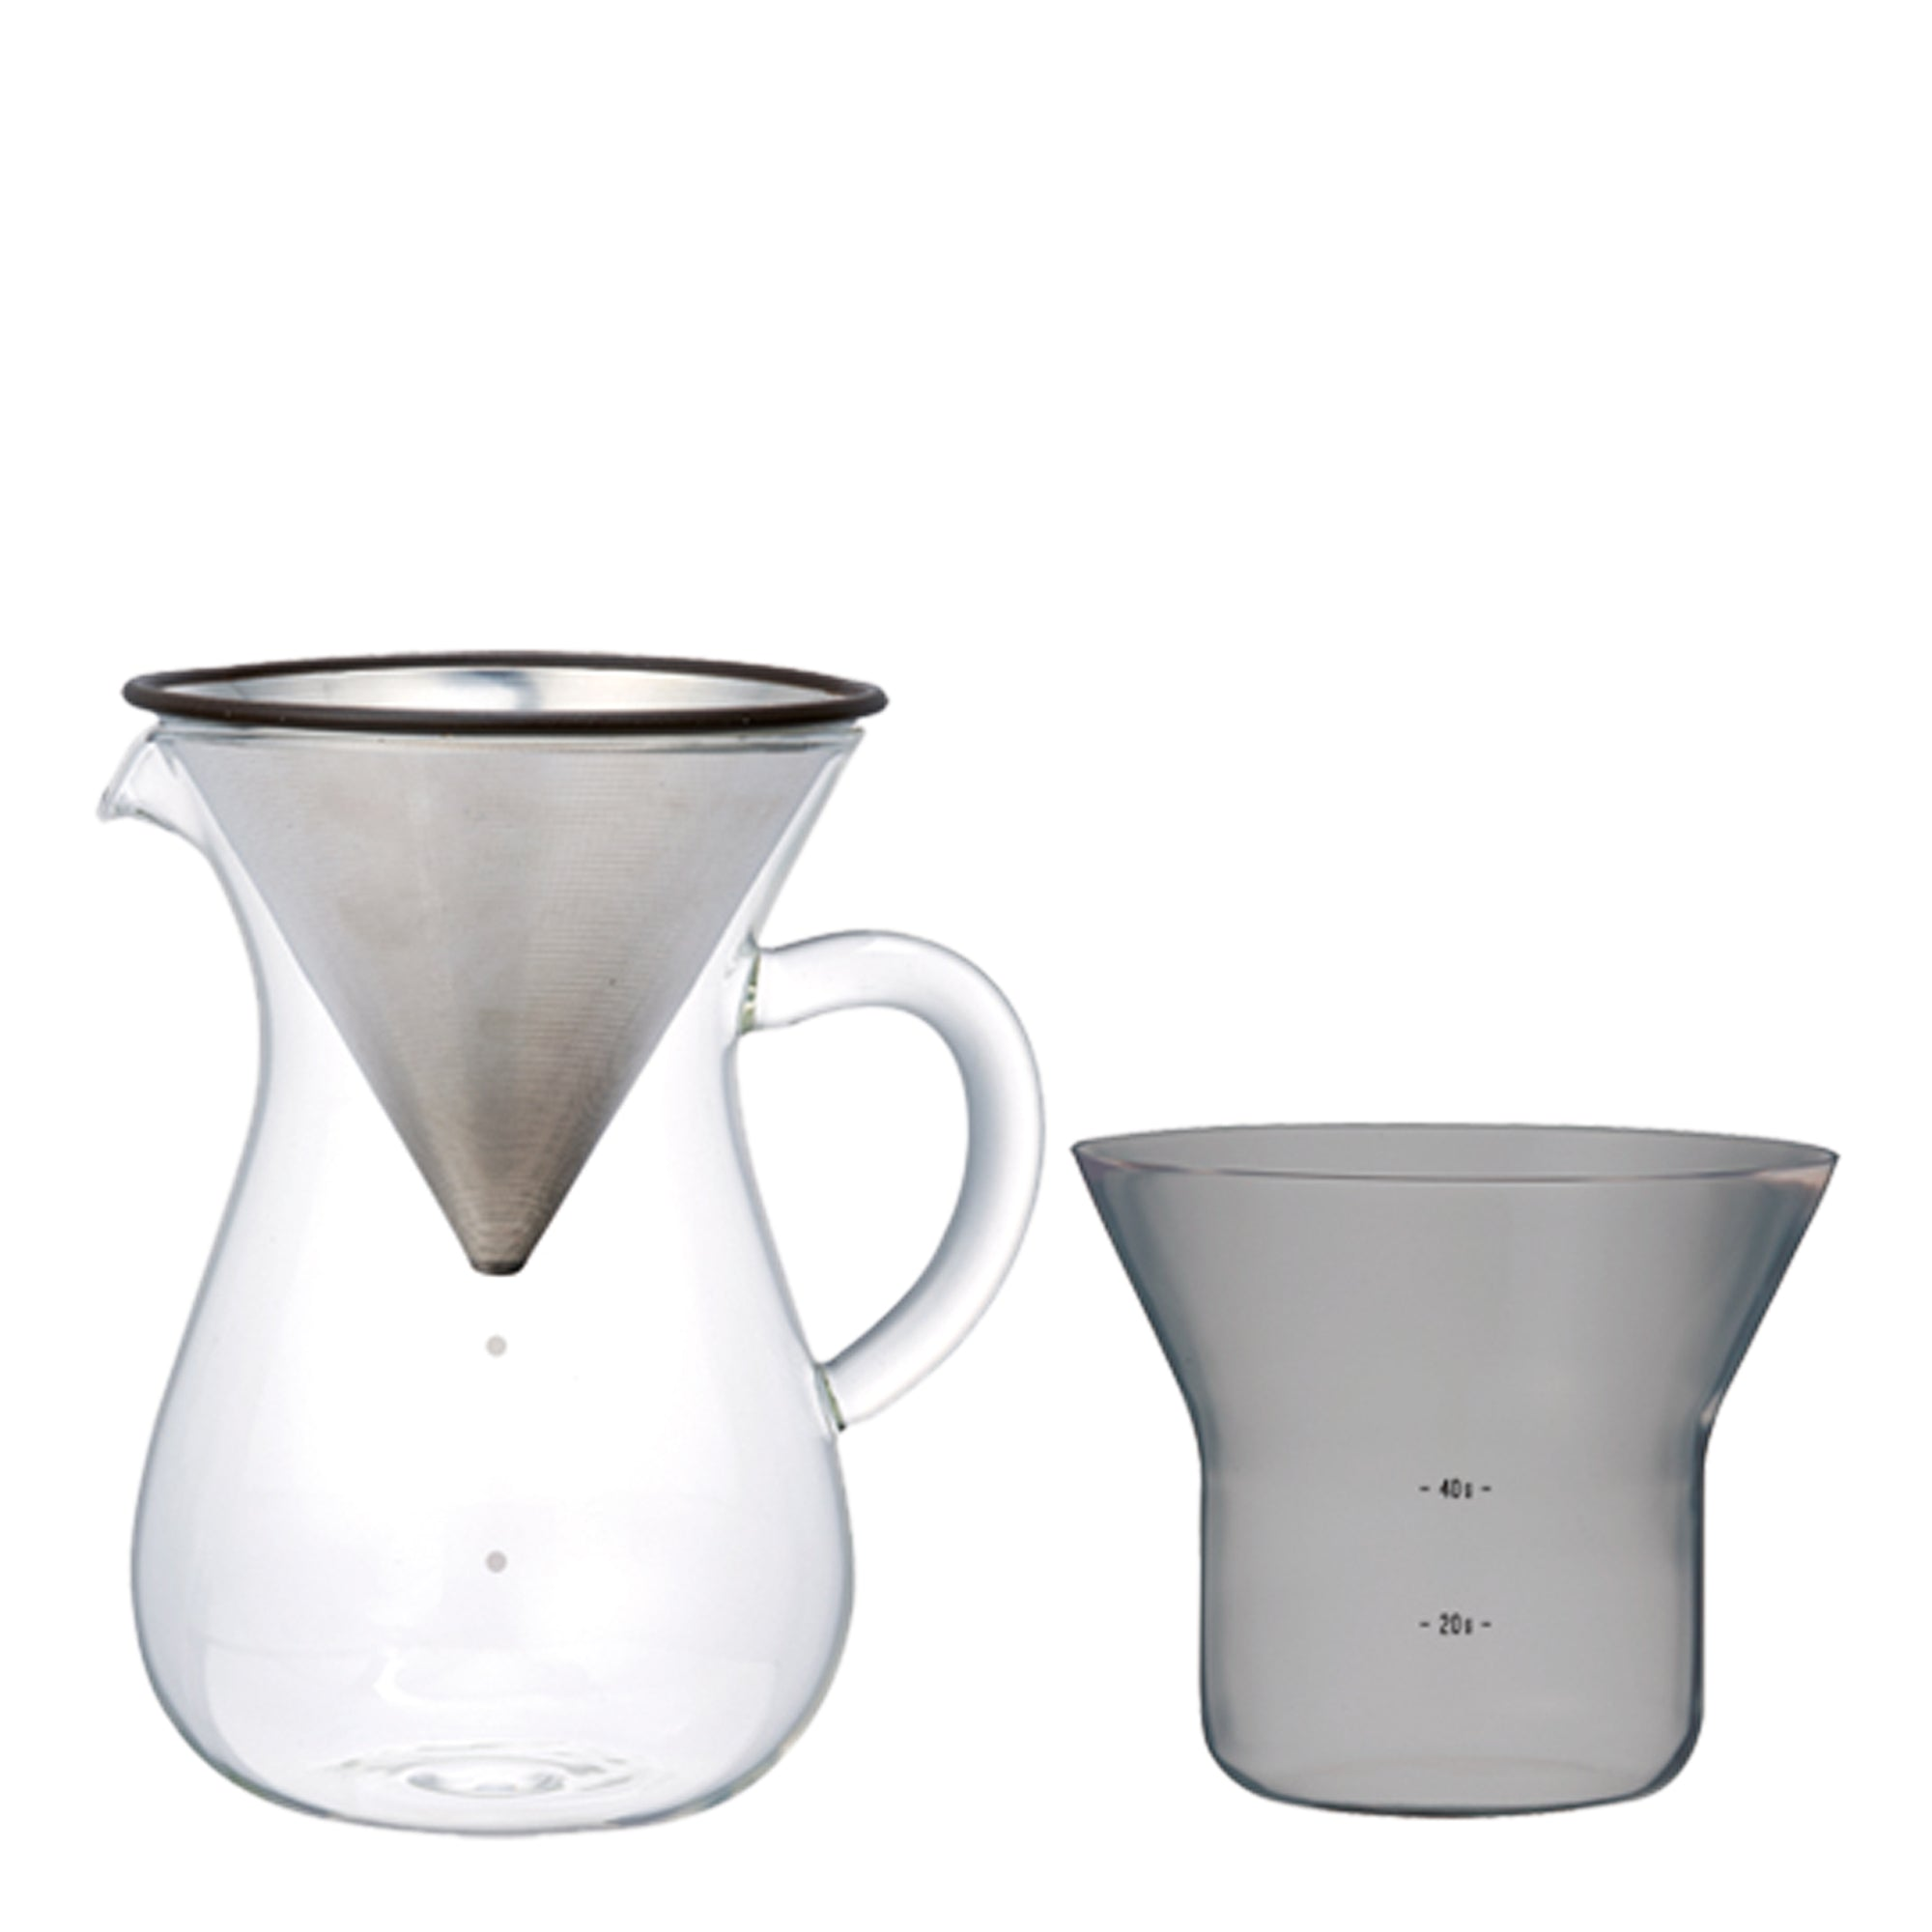 Carafe Pourover w/ SS filter 300ml - Kinto - Espresso Gear